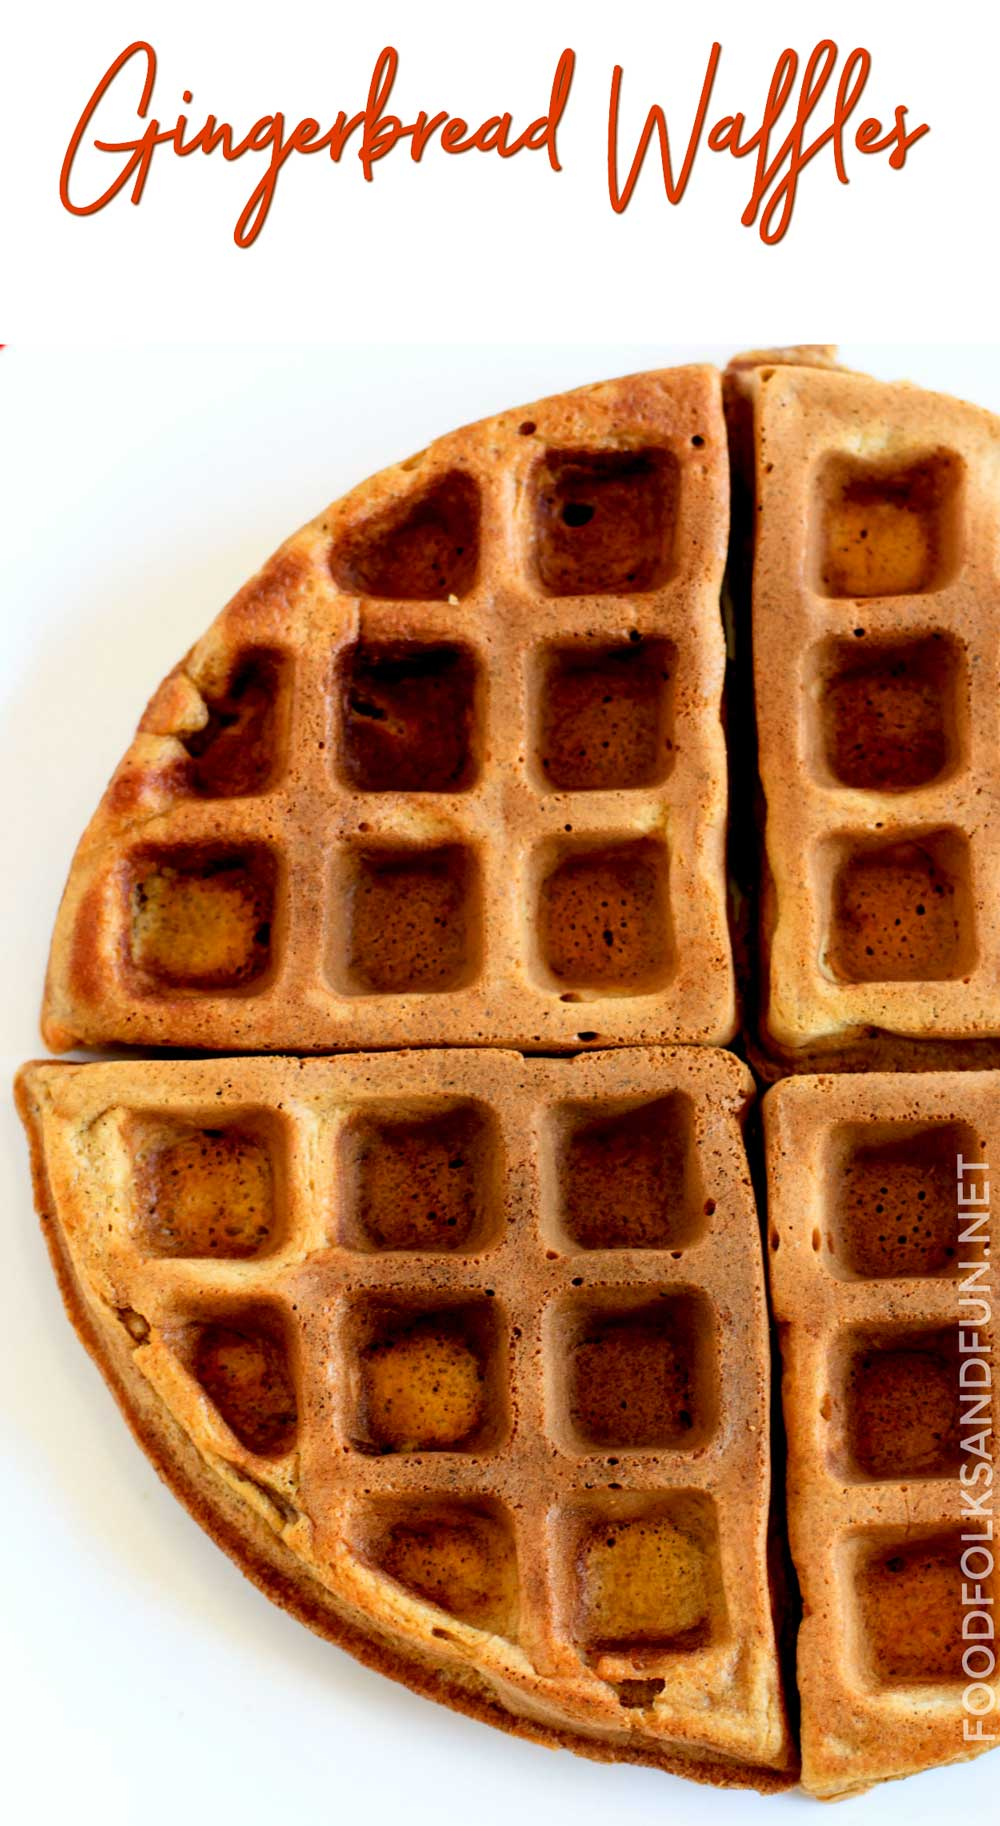 Gingerbread Waffles • Food, Folks and Fun